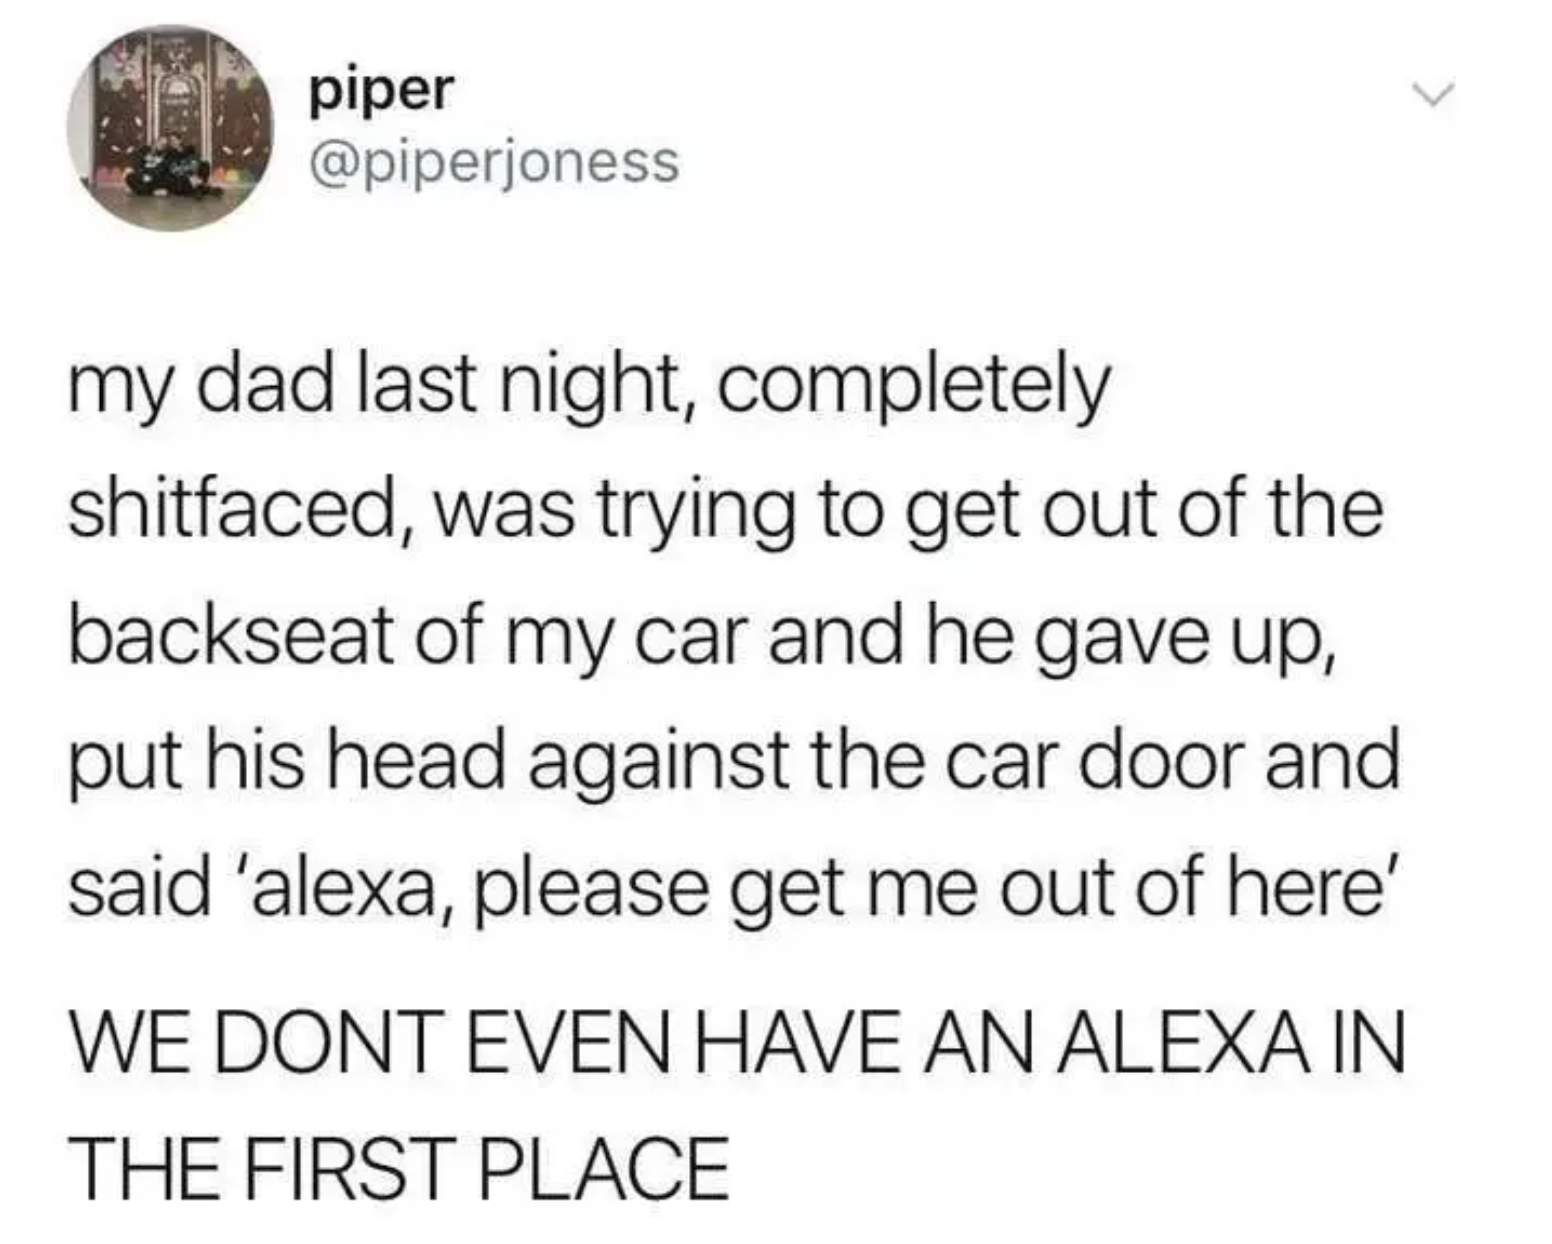 """Tweet reading, """"My dad last night, completely shitfaced, was trying to get out of the backseat of my car and he gave up, put his head against the car door and said 'alexa, please get me out of here'  WE DONT EVEN HAVE AN ALEXA IN THE FIRST PLACE"""""""